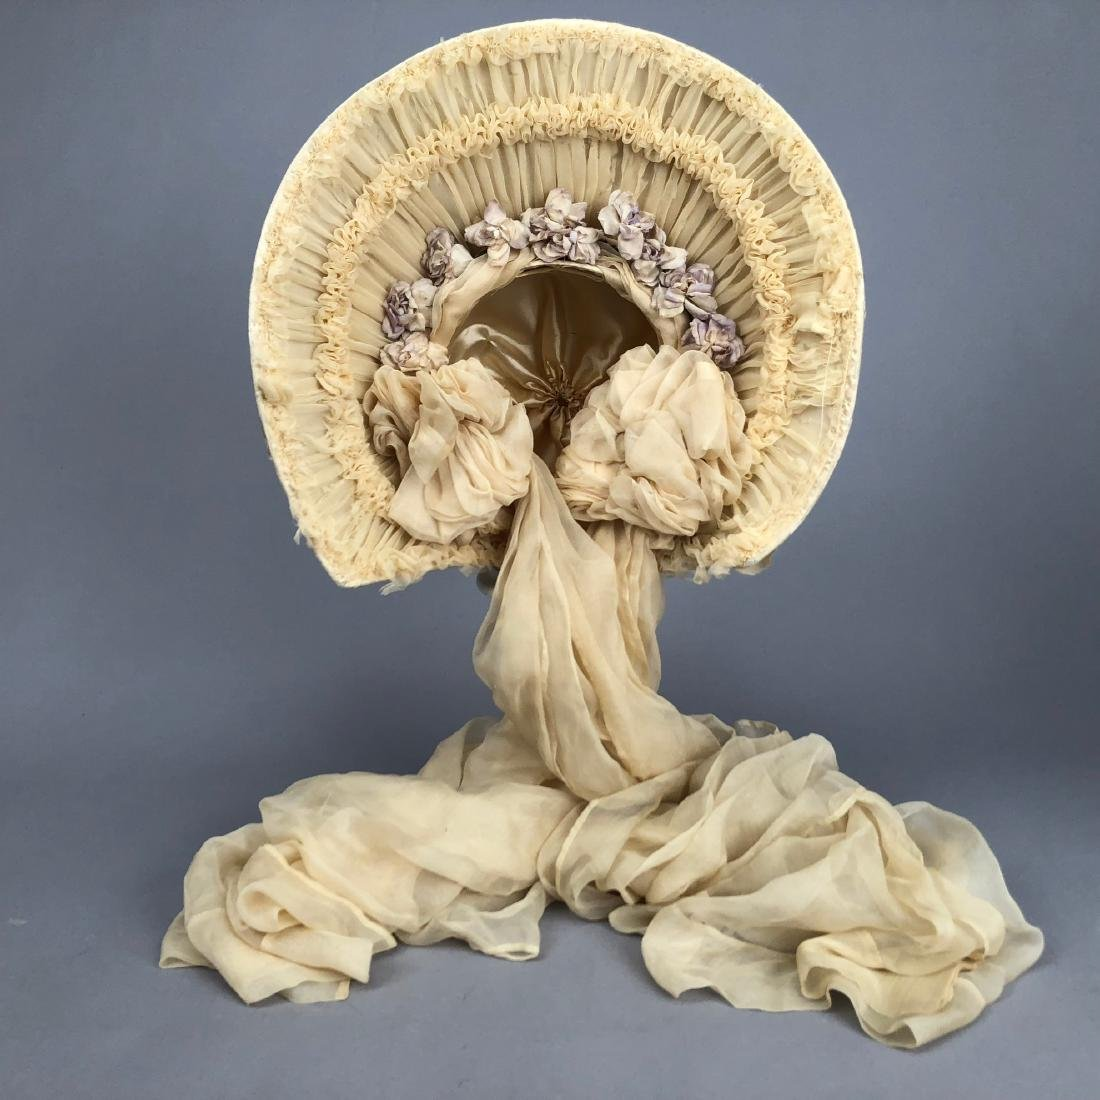 YOUNG LADY'S SATIN COVERED STRAW HAT, c. 1870